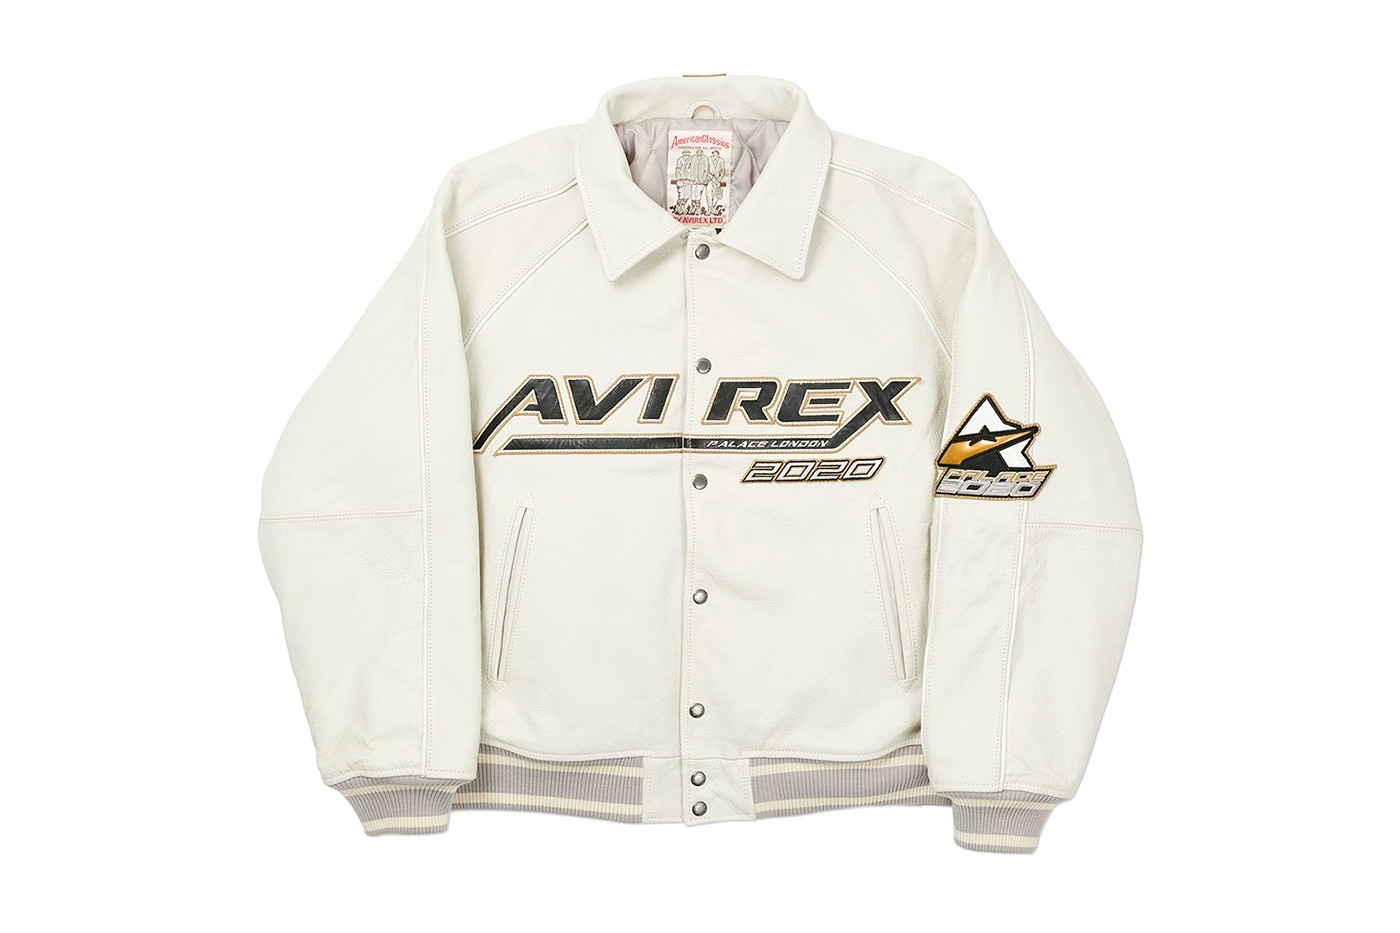 Palace Avirex leather Jackets